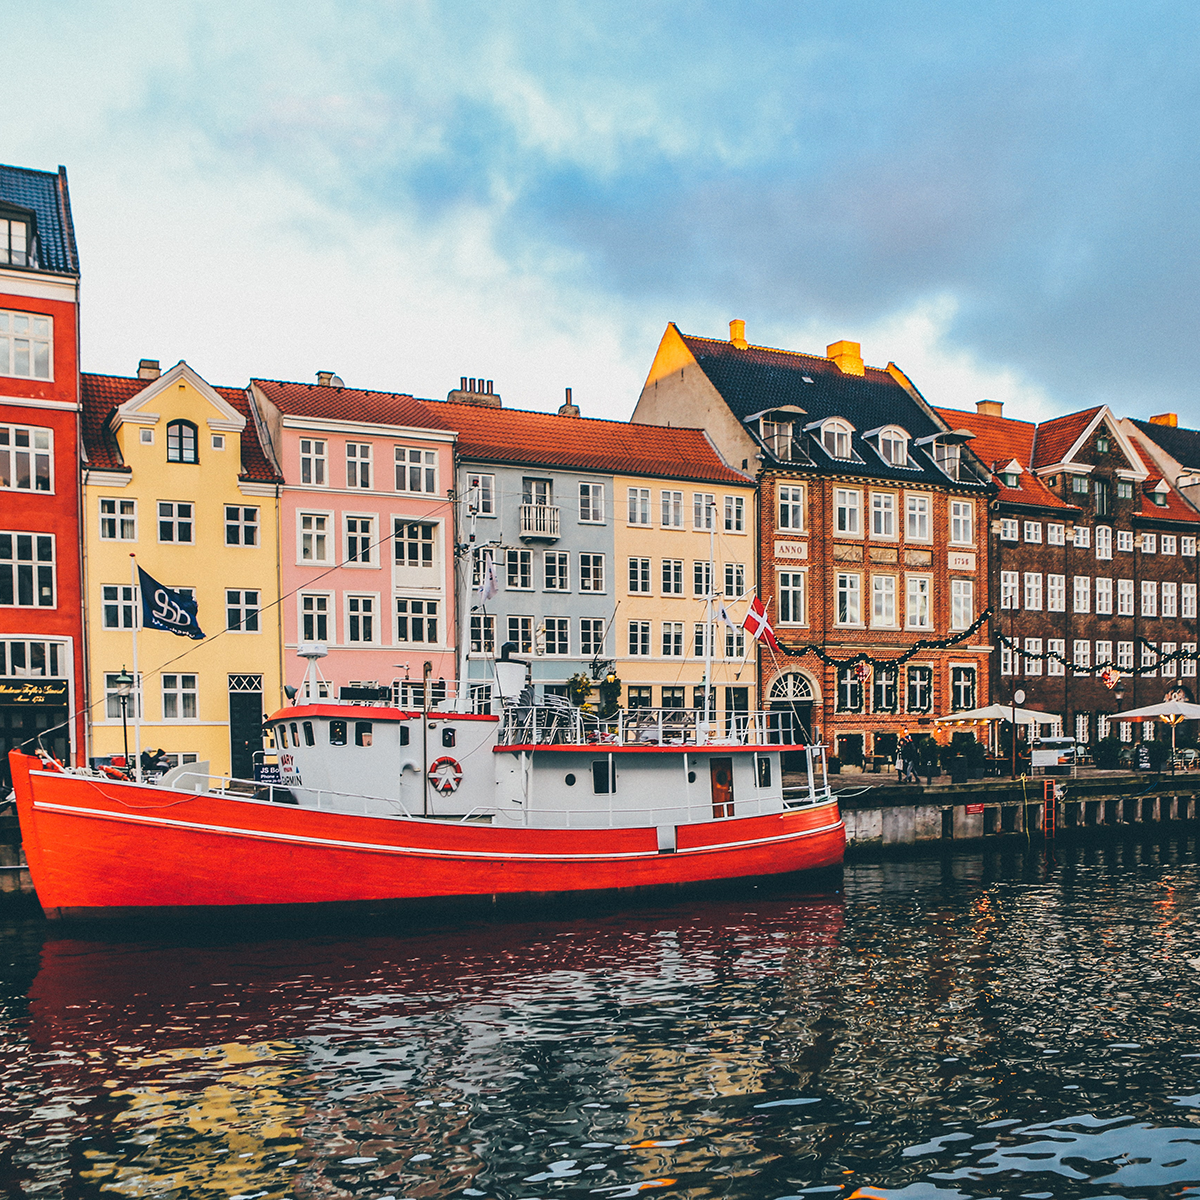 Copenhagen is one of our top cities to explore after lockdown